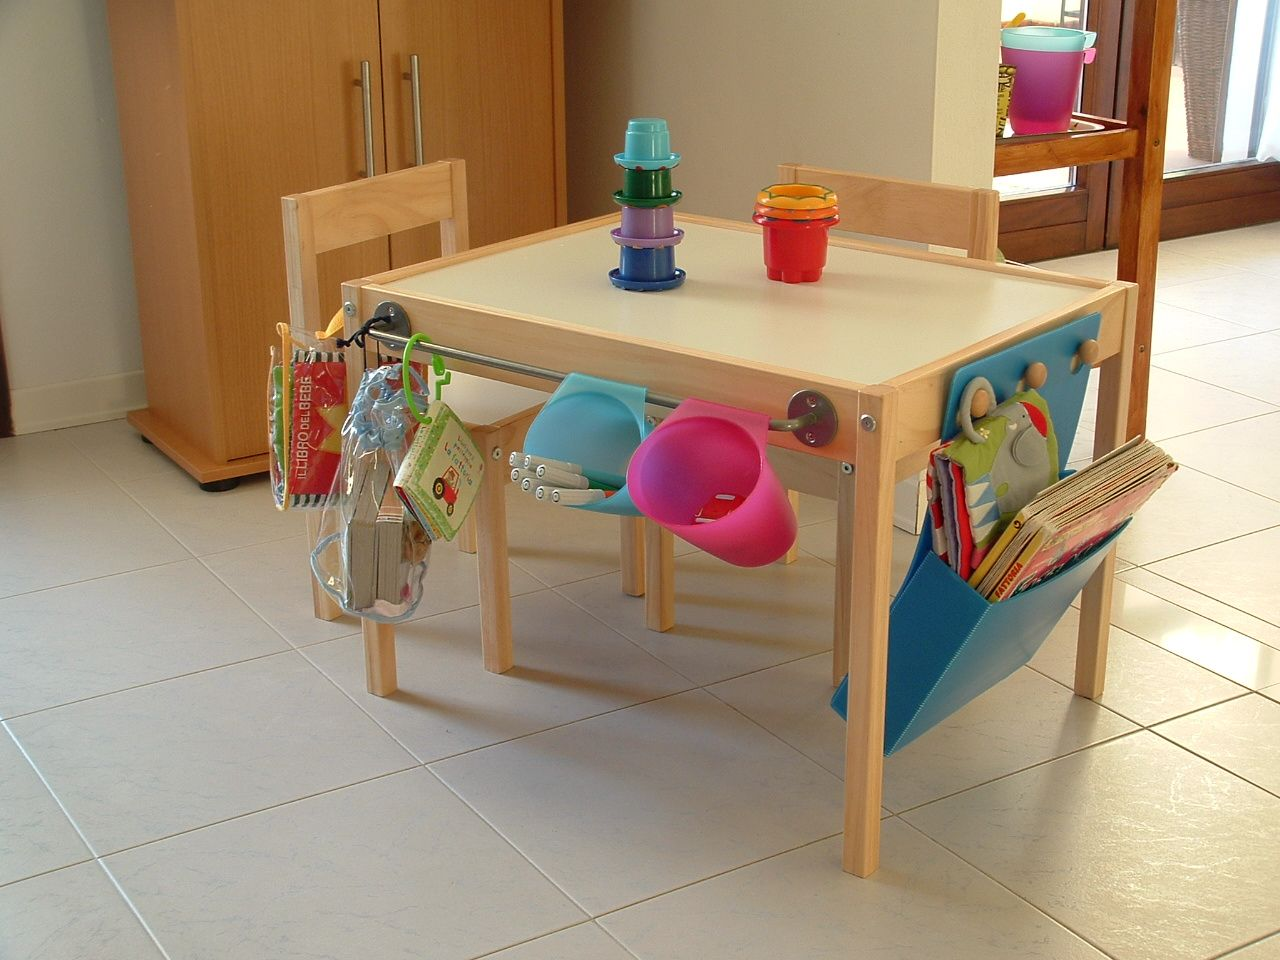 Great idea for kid's table!